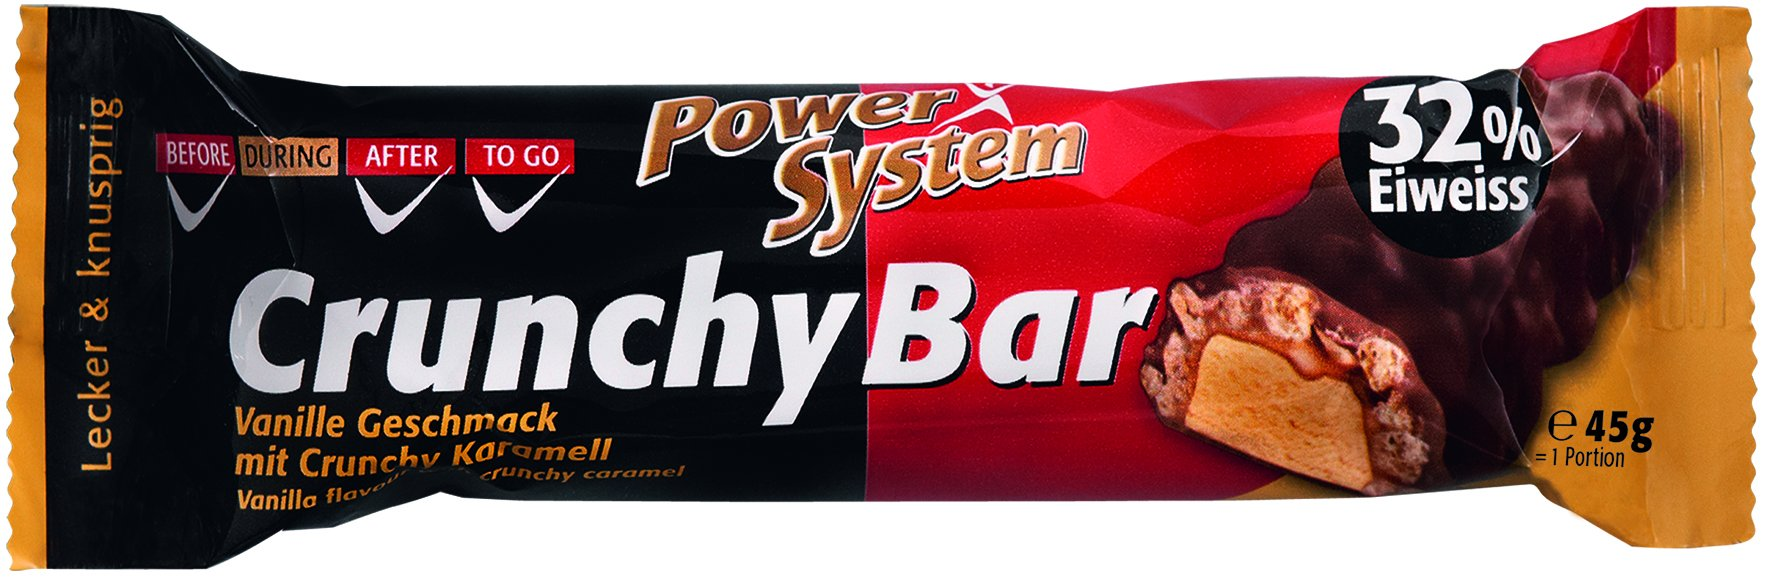 Power System Crunchy Bar 32% Vanilla with Crunchy Caramel 45g